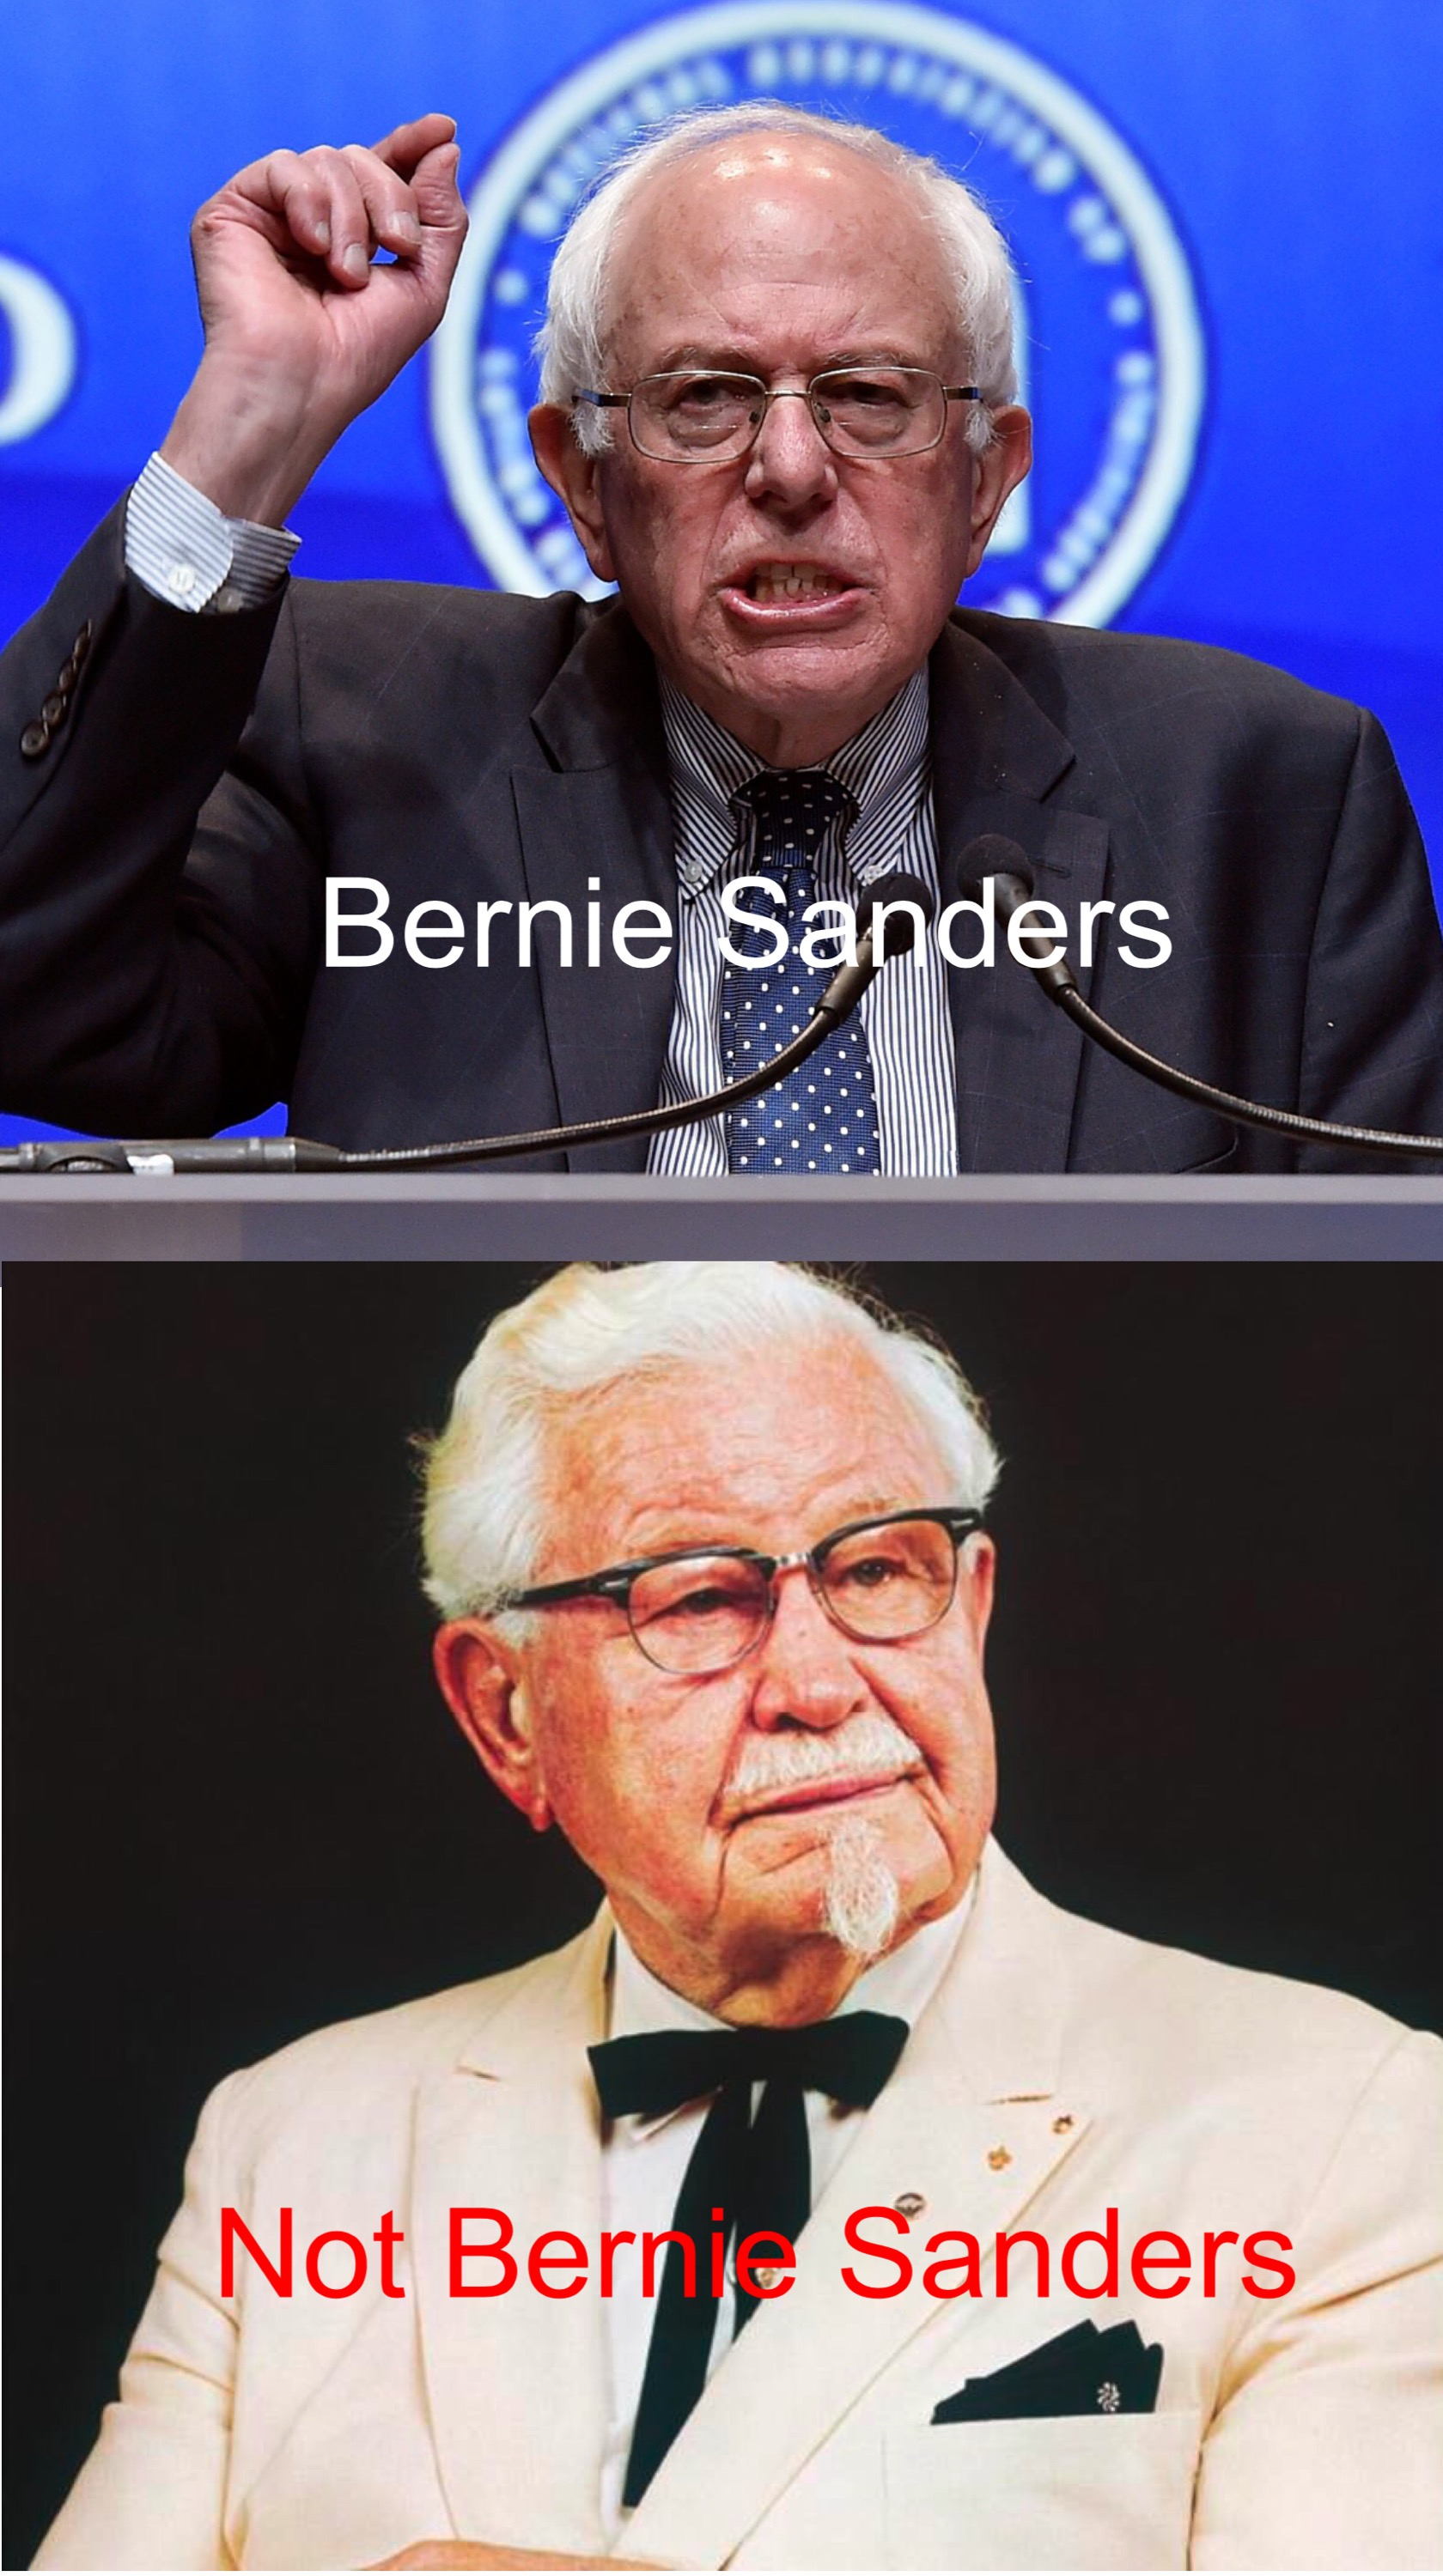 bernie sanders does not own kfc